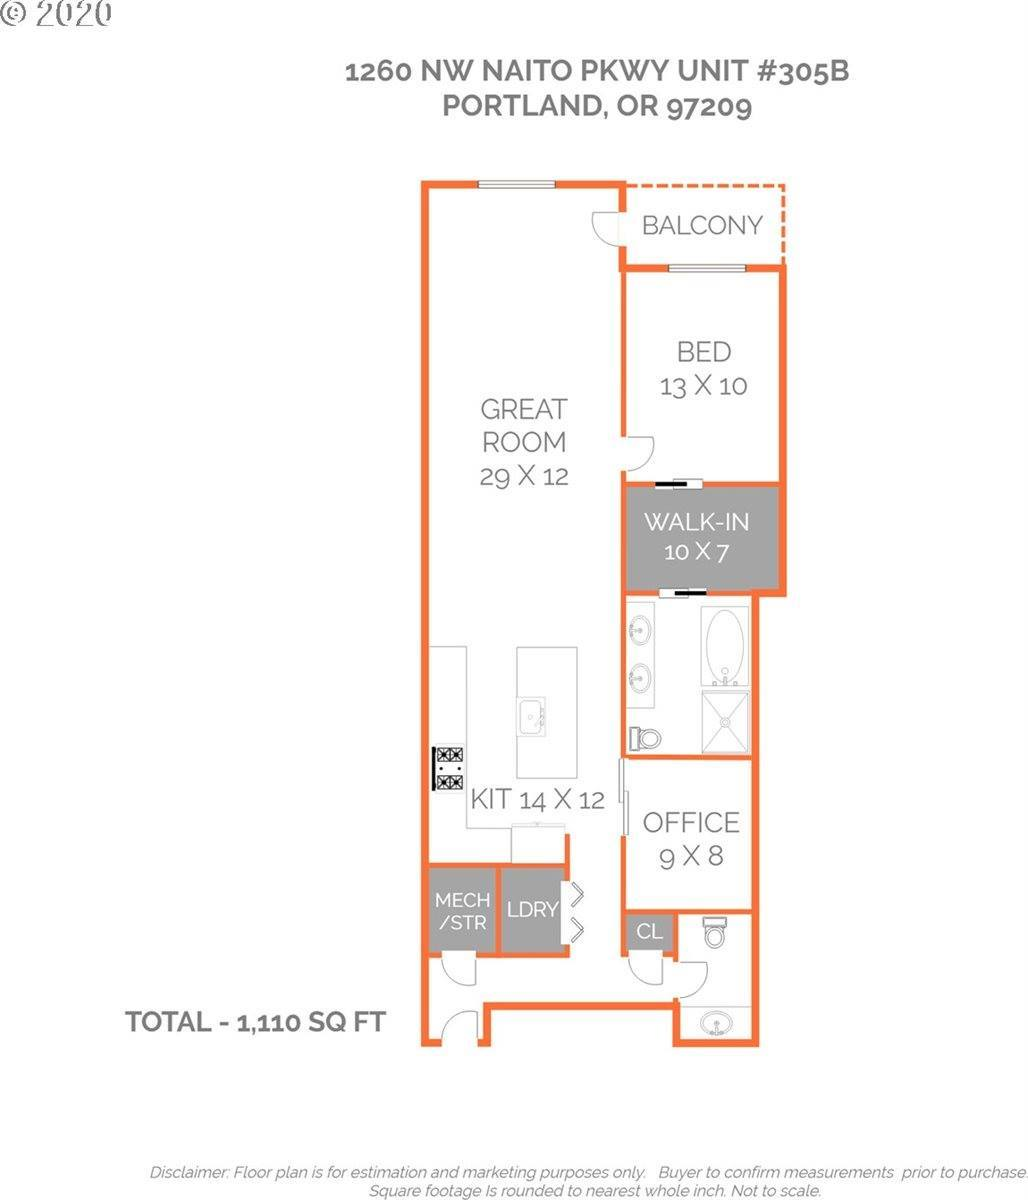 1260 NW Naito Pkwy, #305B, Portland, OR 97209